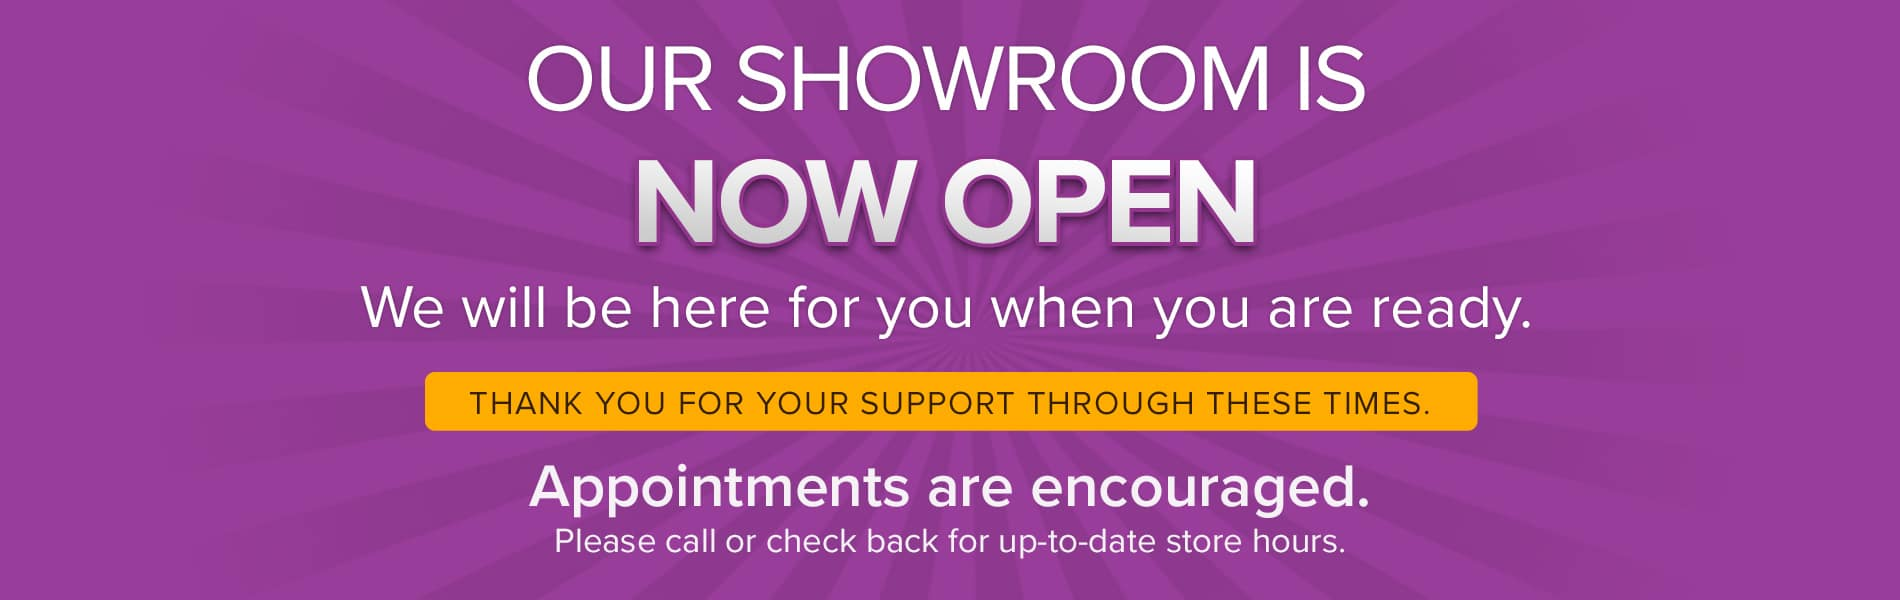 Our Showroom Is Now Open